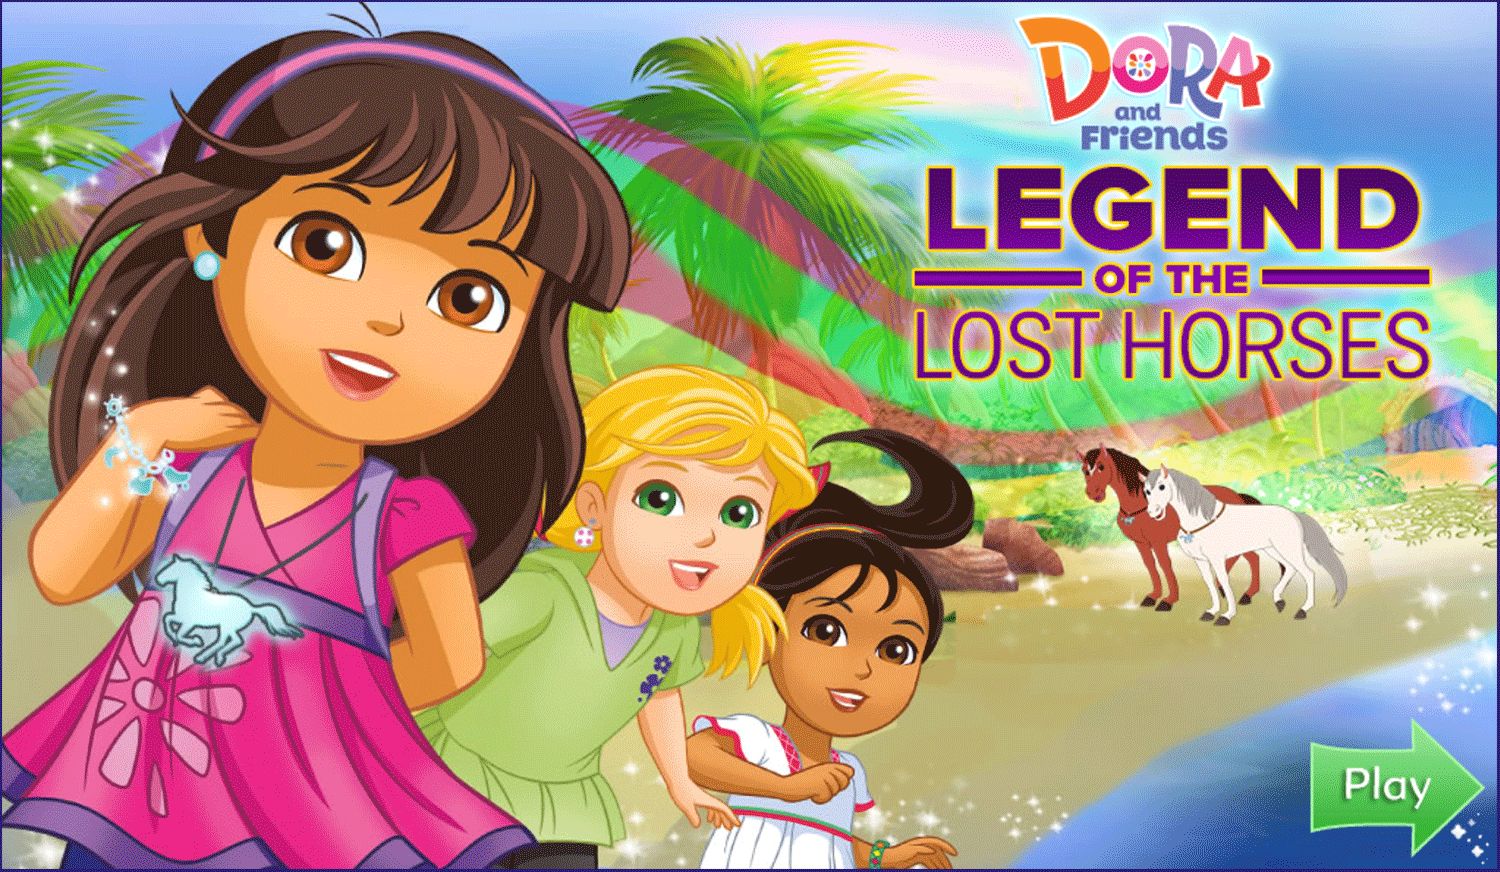 Dora and Friends Legend of the Lost Horses Game Welcome Screen Screenshot.